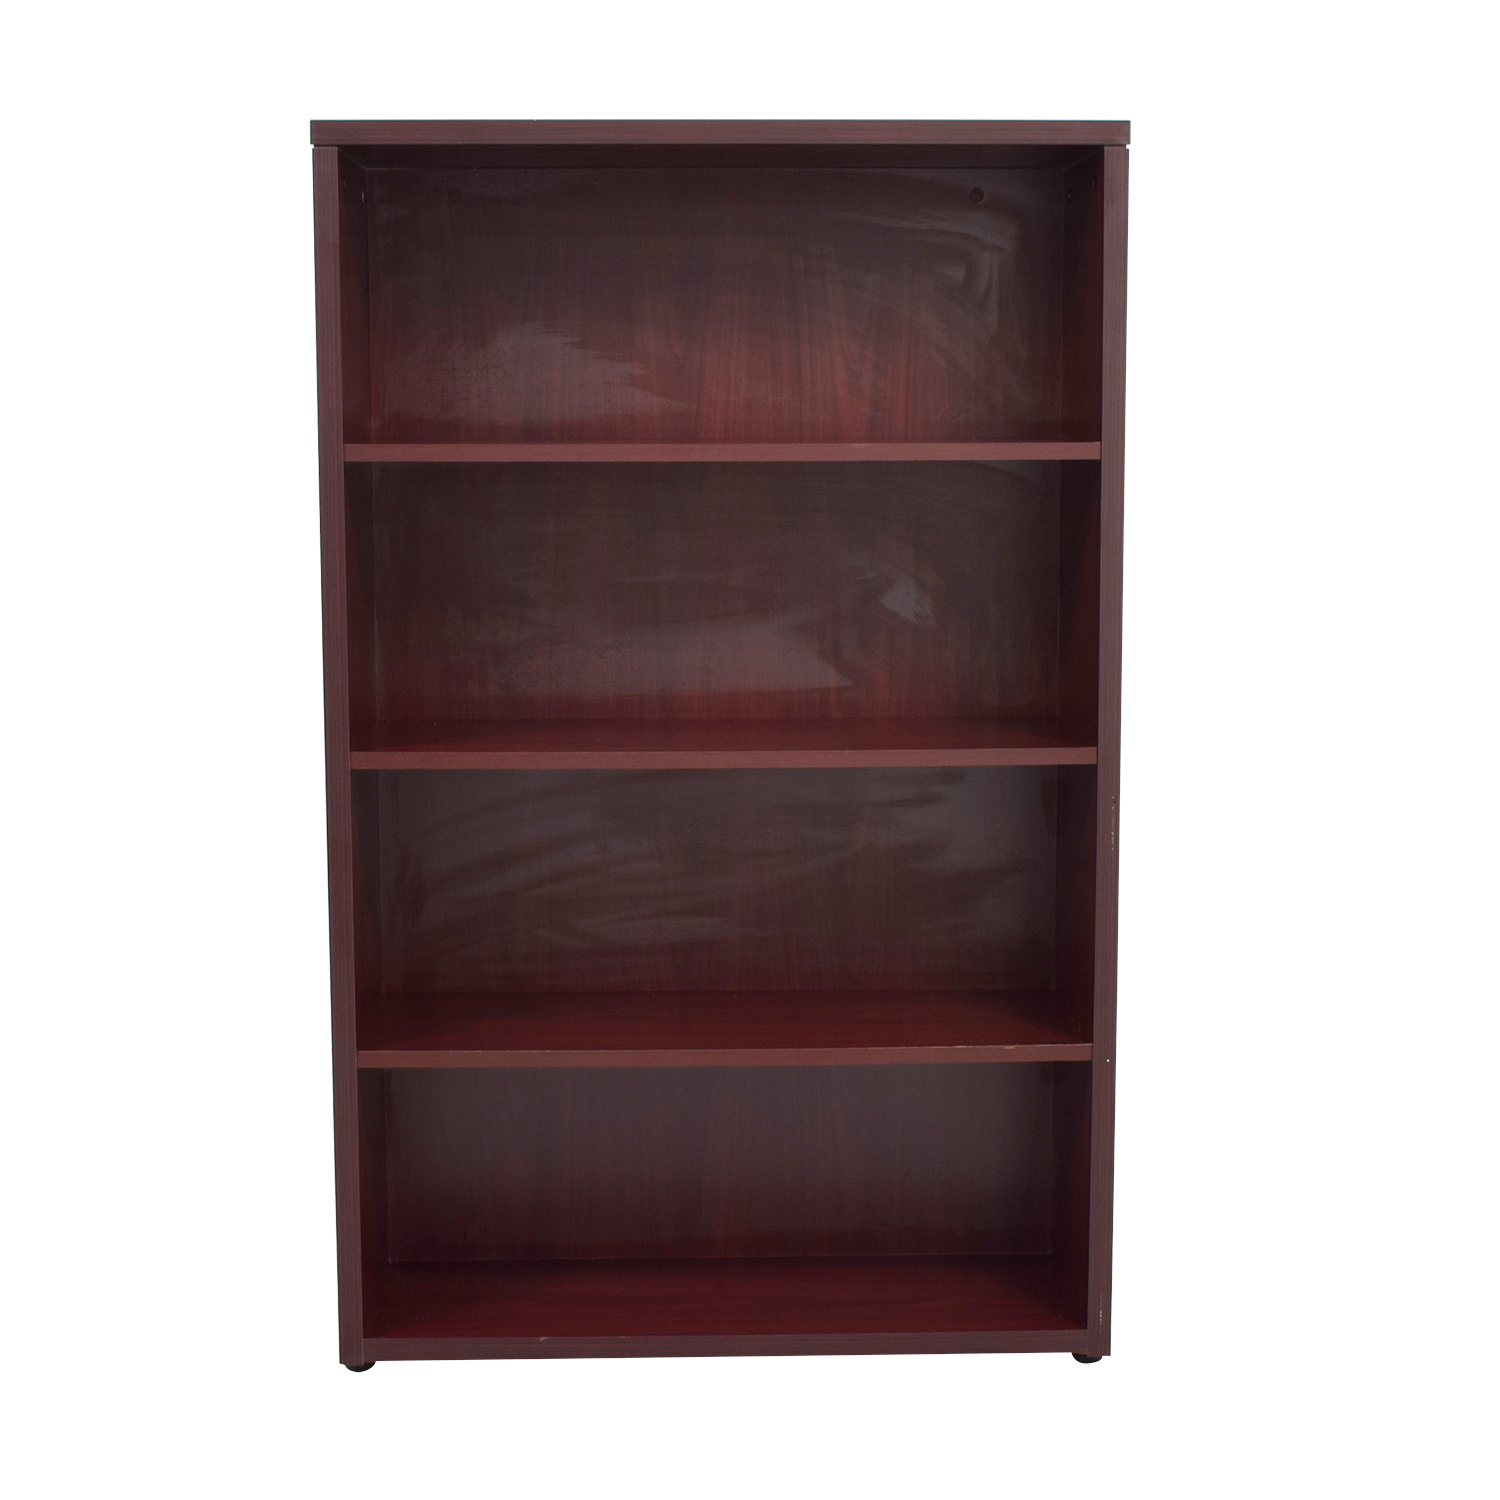 Wayfair Four Shelf Bookcase / Bookcases & Shelving